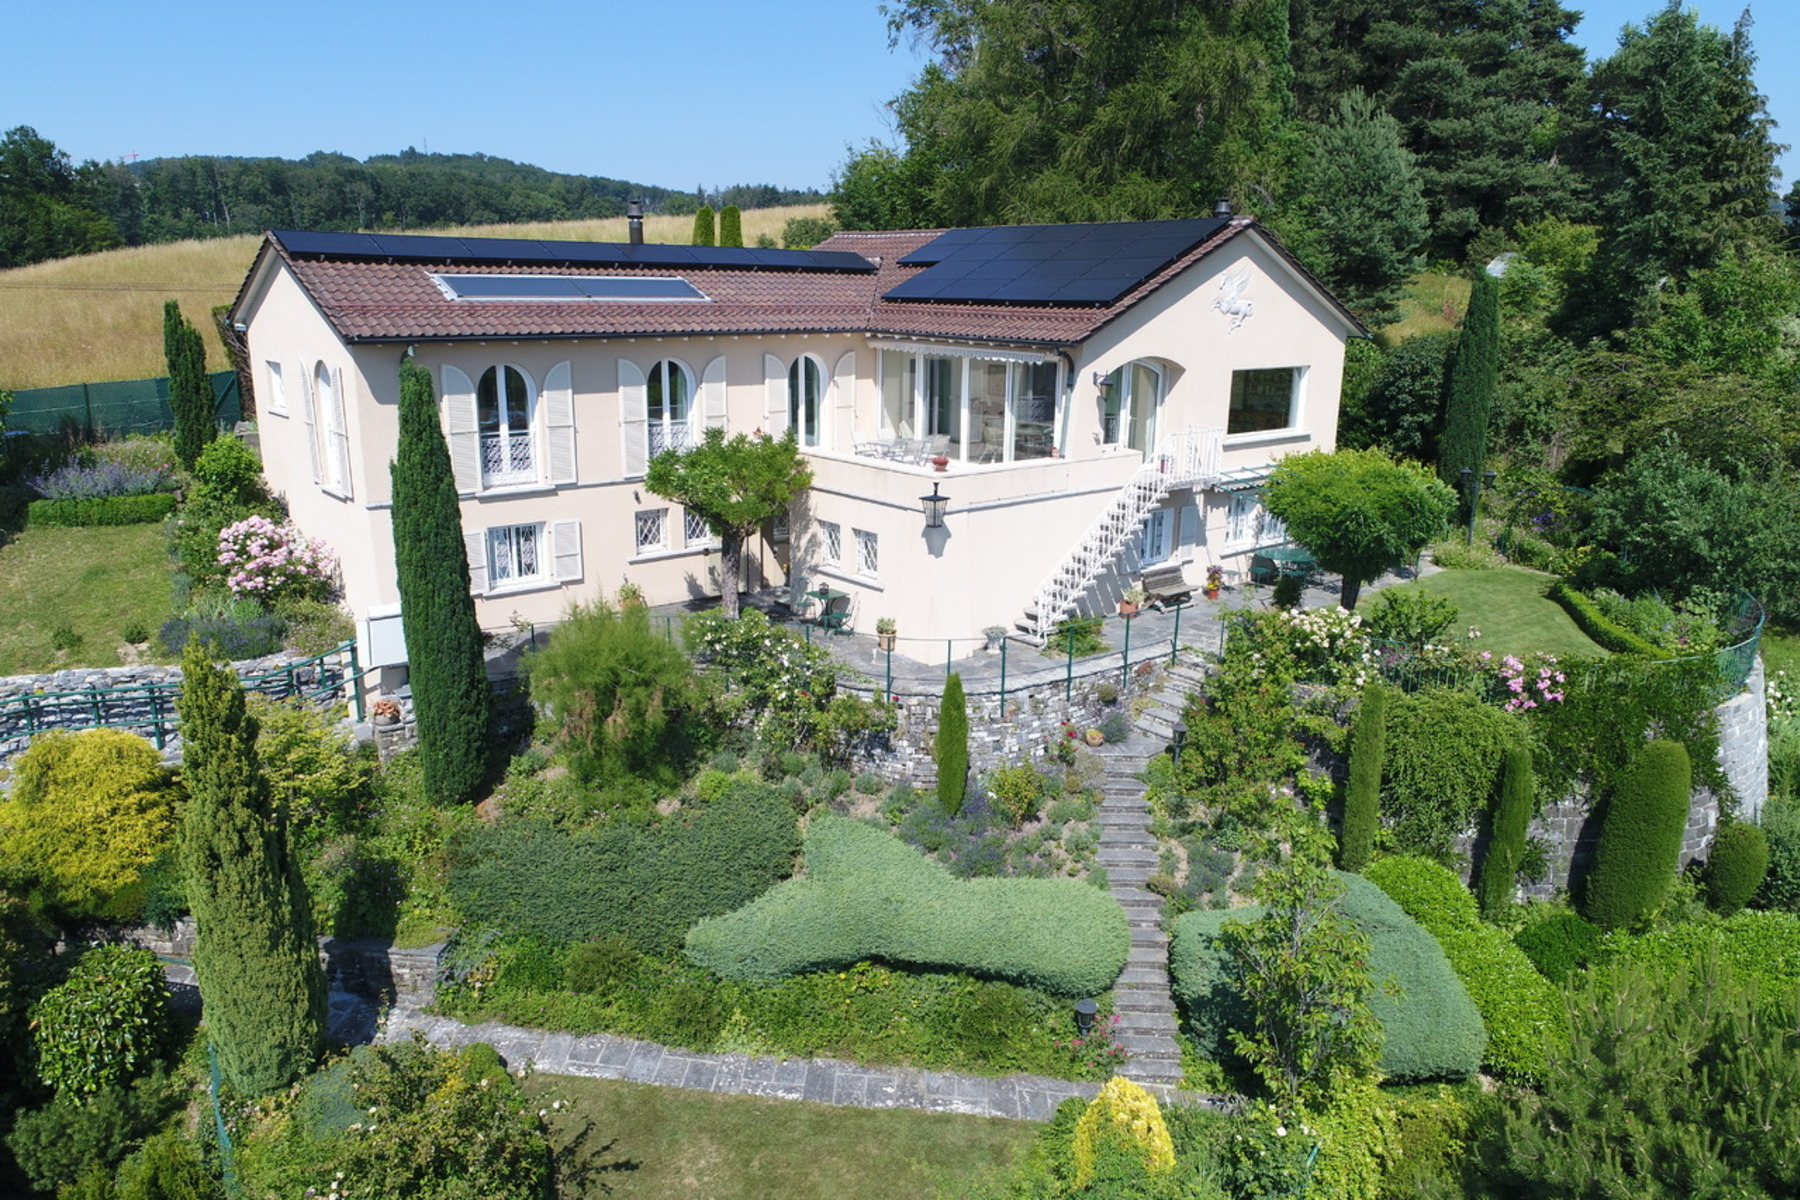 Single Family Home for Sale at Beautiful classical property offering 8.5 rooms - First-class address Lausanne Lausanne, Vaud, 1012 Switzerland